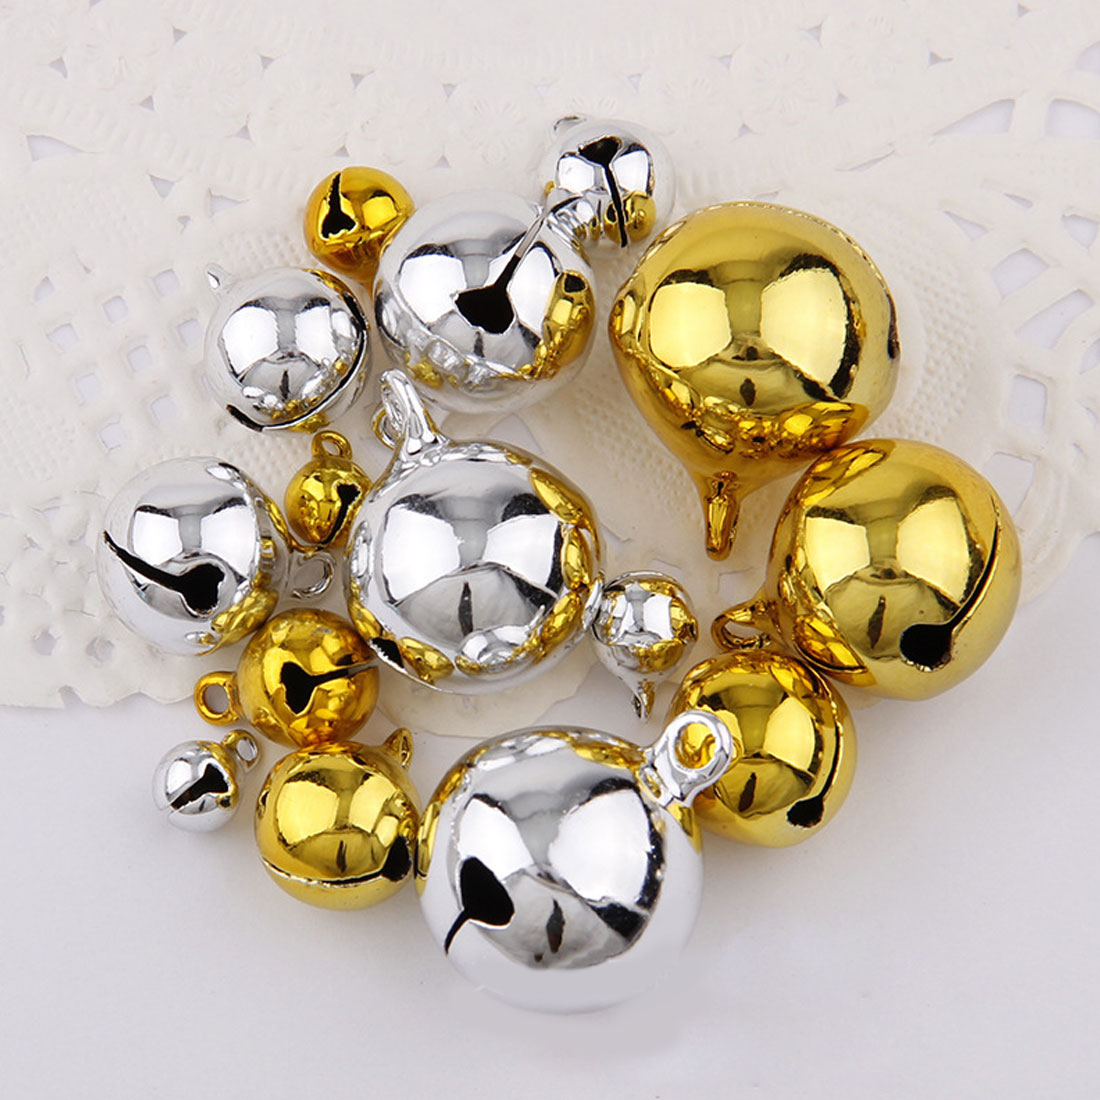 Christmas Jingle Bells Gold or Silver Ideal for Xmas Crafts Packs of 10